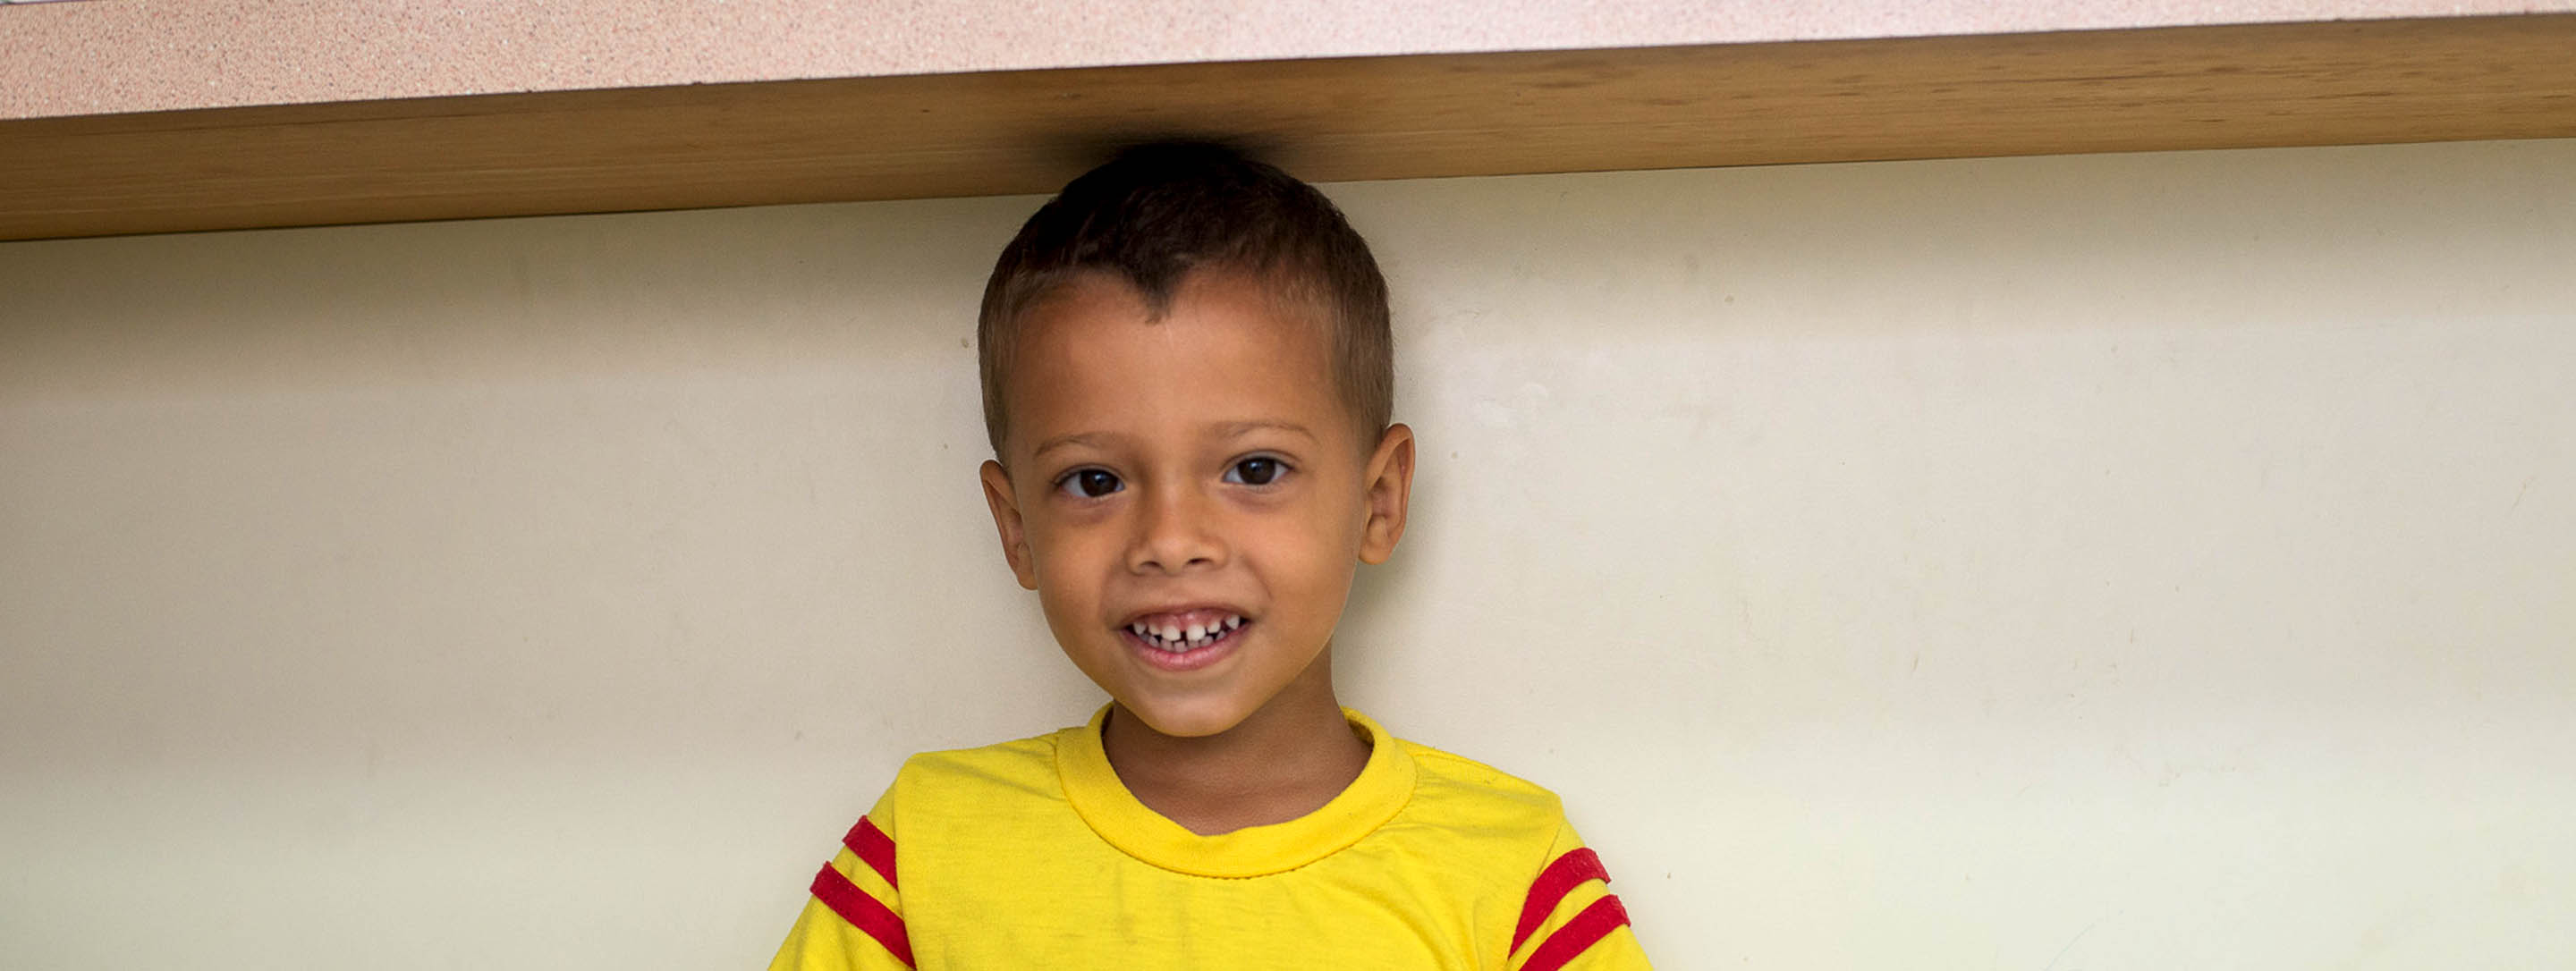 puerto rican child affected by hurricane maria